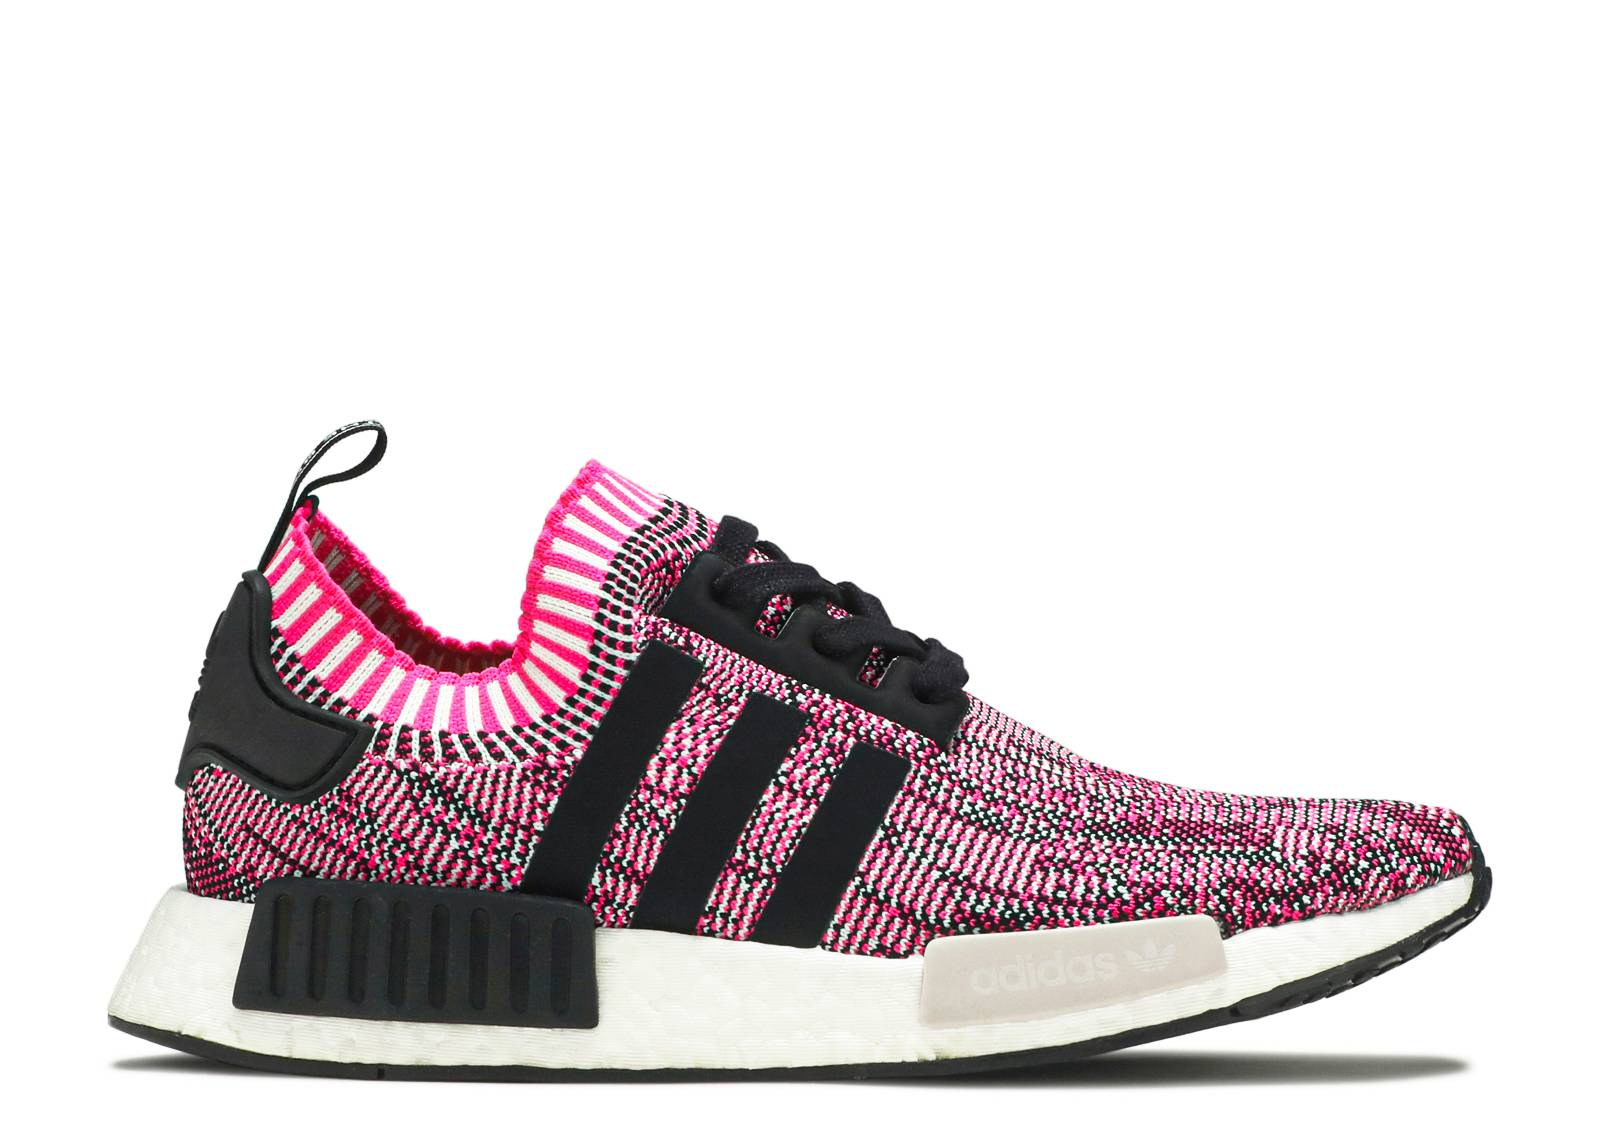 Nmd R1 W Pk - Adidas - bb2363 - shock pink core black running white ... 5e3c89730